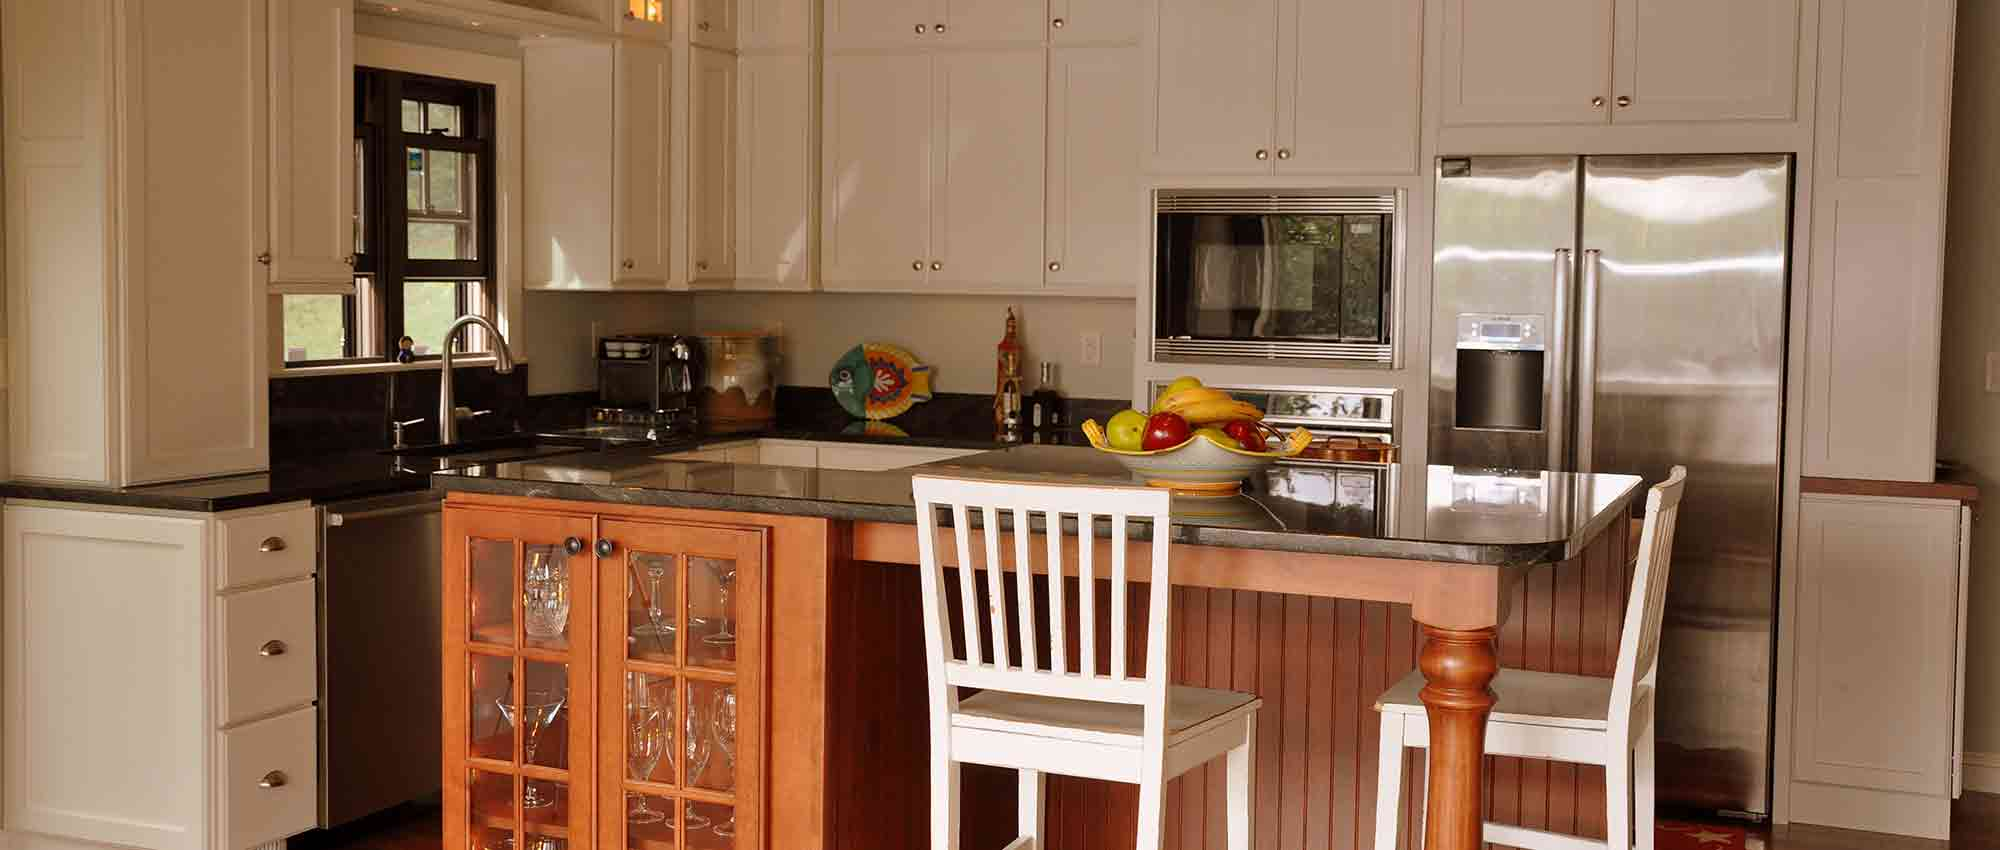 Cape Cod Kitchen Remodeling By Chris Vincent Of Yarmouth.